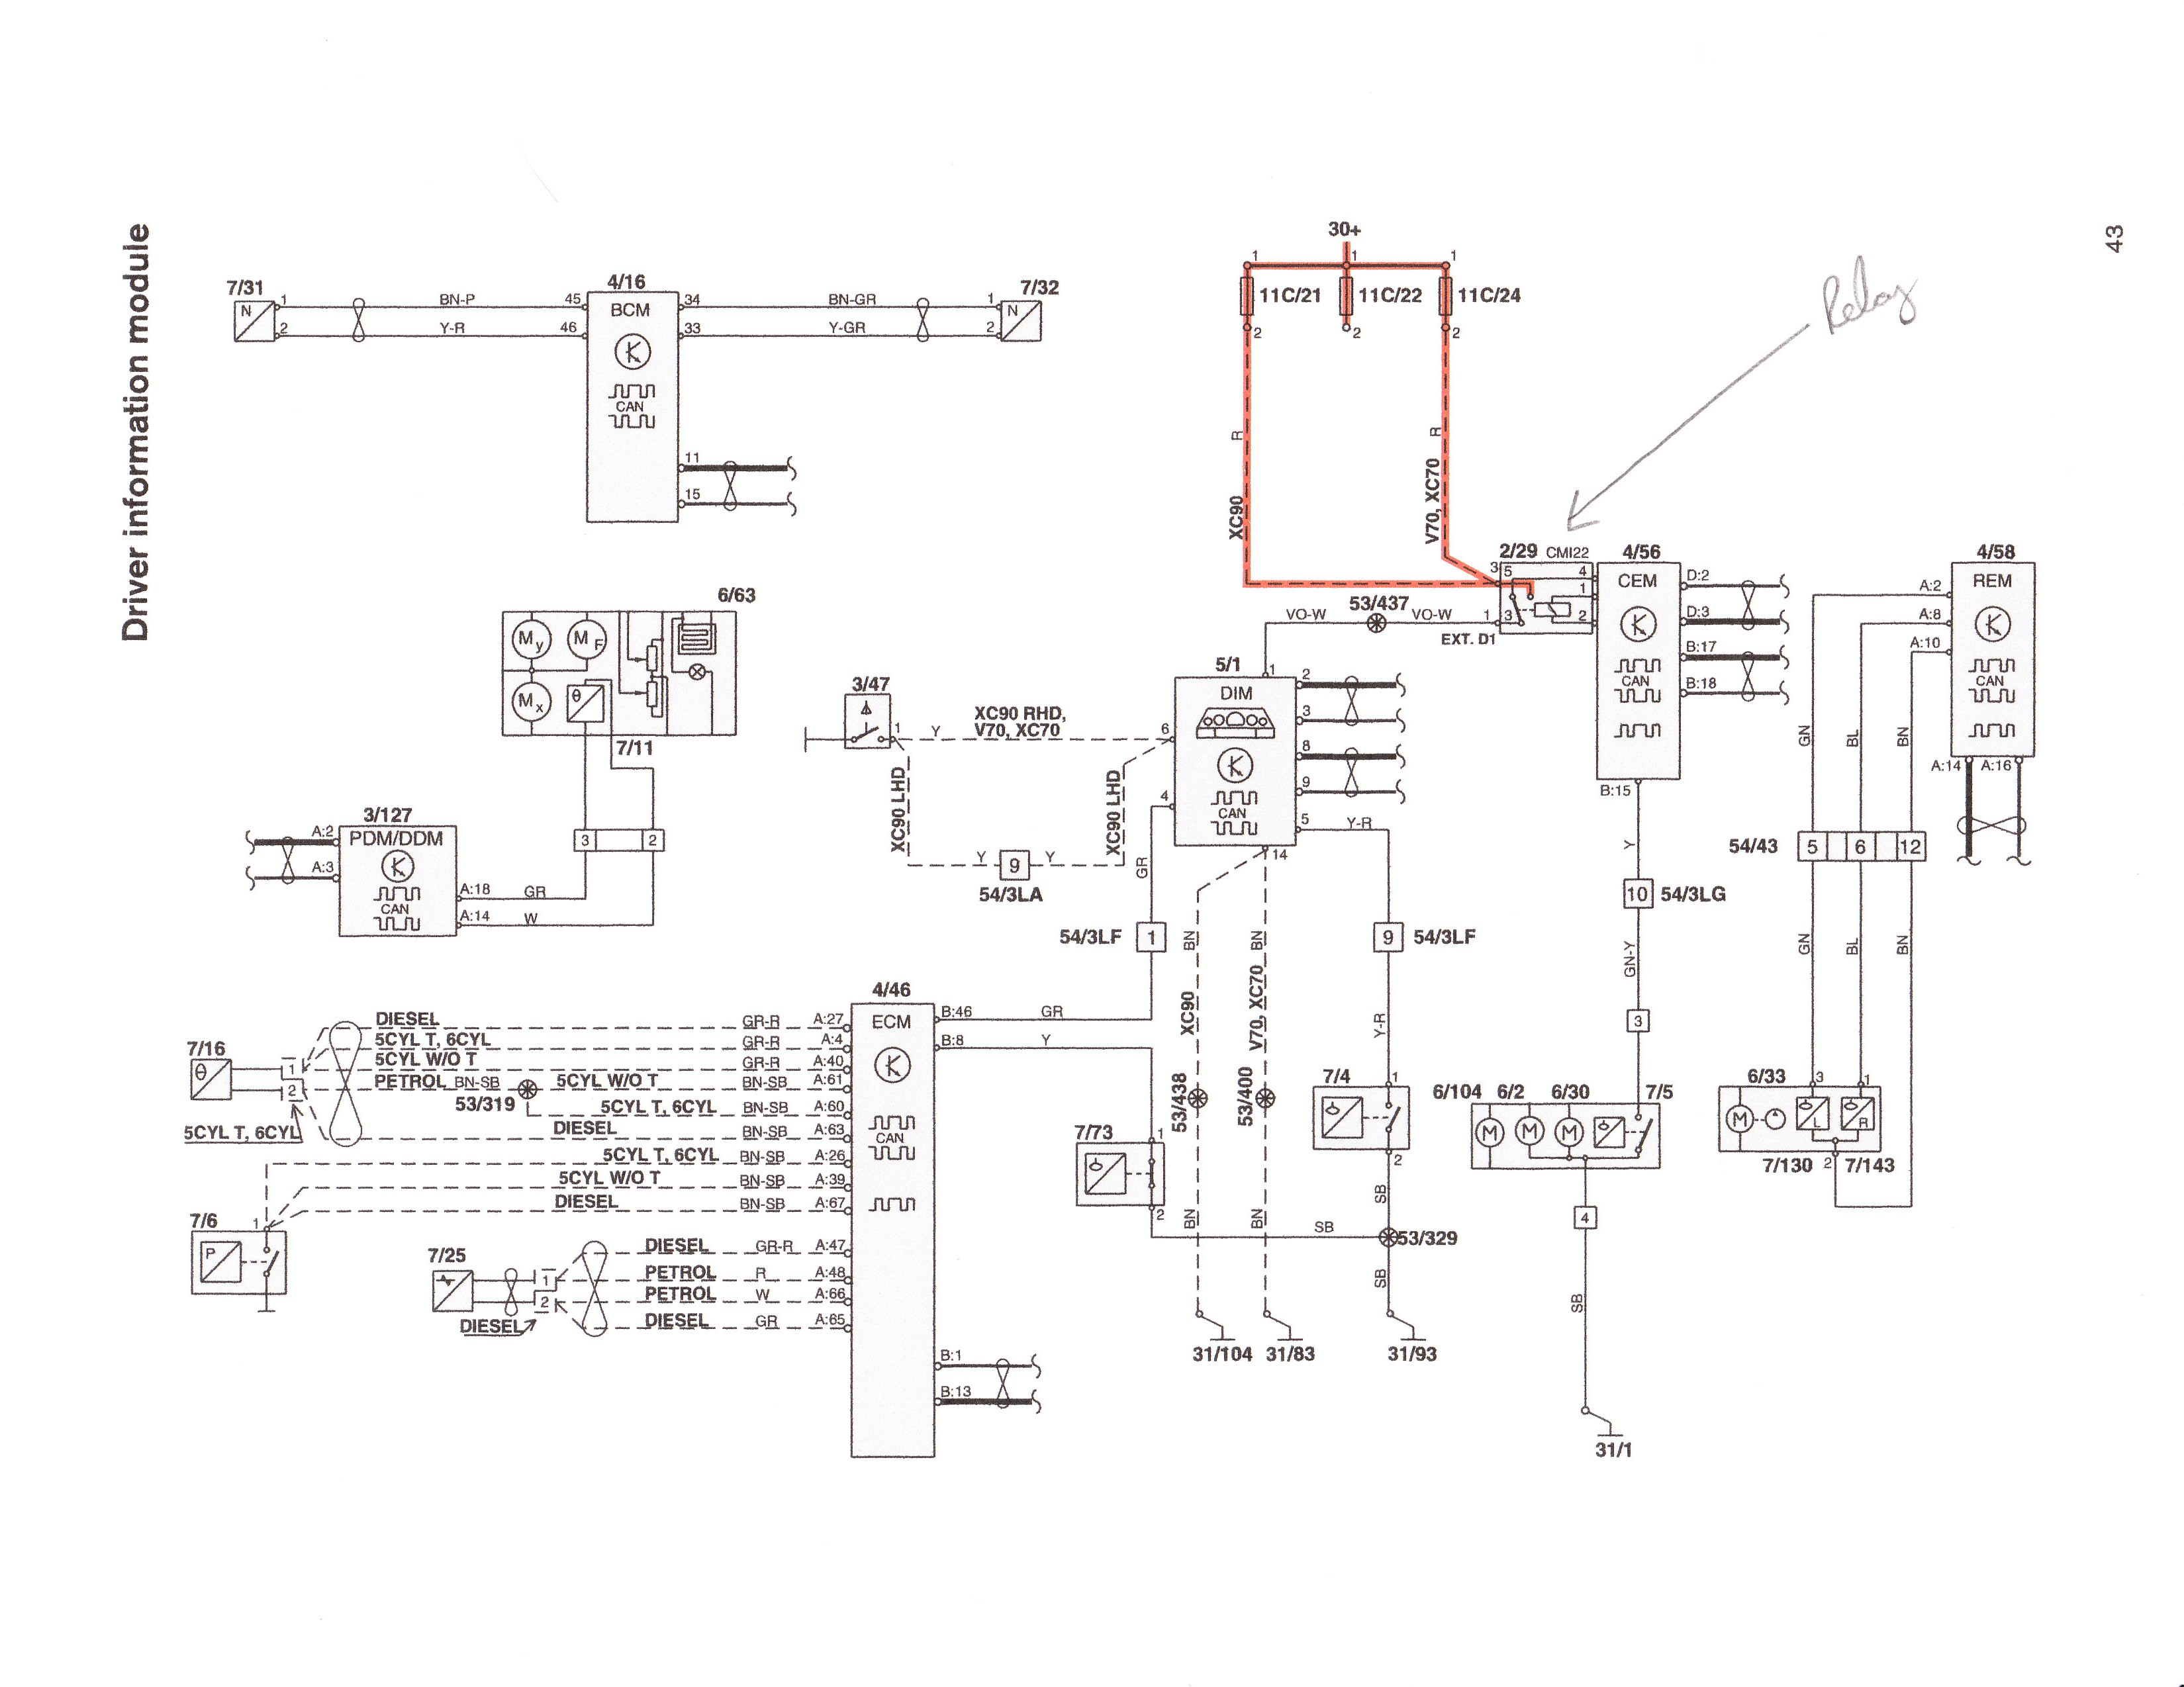 99 Volvo S80 Wiring Diagram Electrical Schematics Additionally 2004 Xc90 Cem Also S40 2001 Fan Explore Schematic U2022 Engine